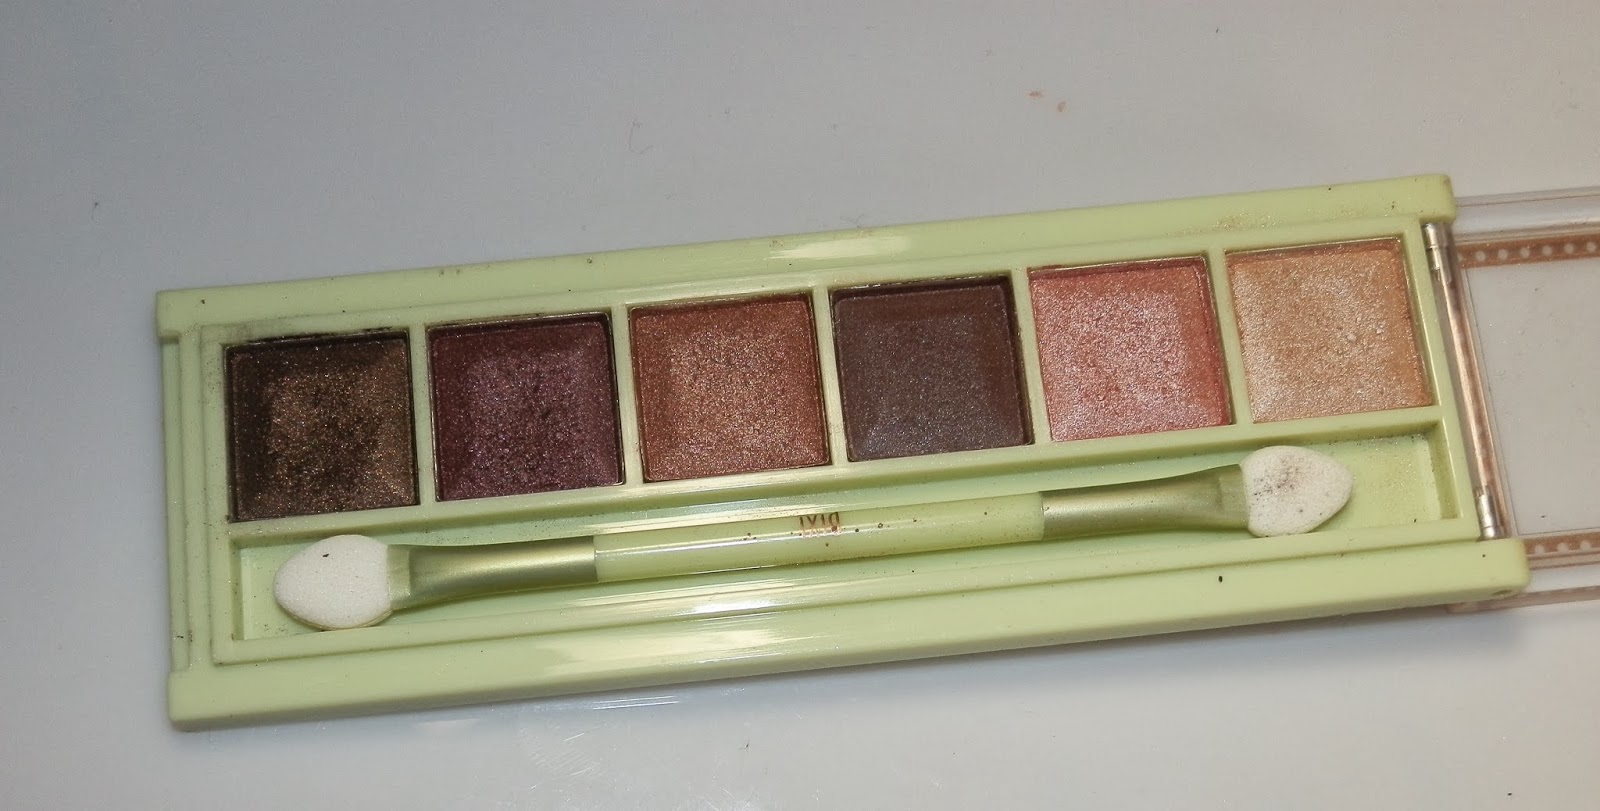 Pixi Beauty Icy Eye Palette Buff Blizzard Swatches